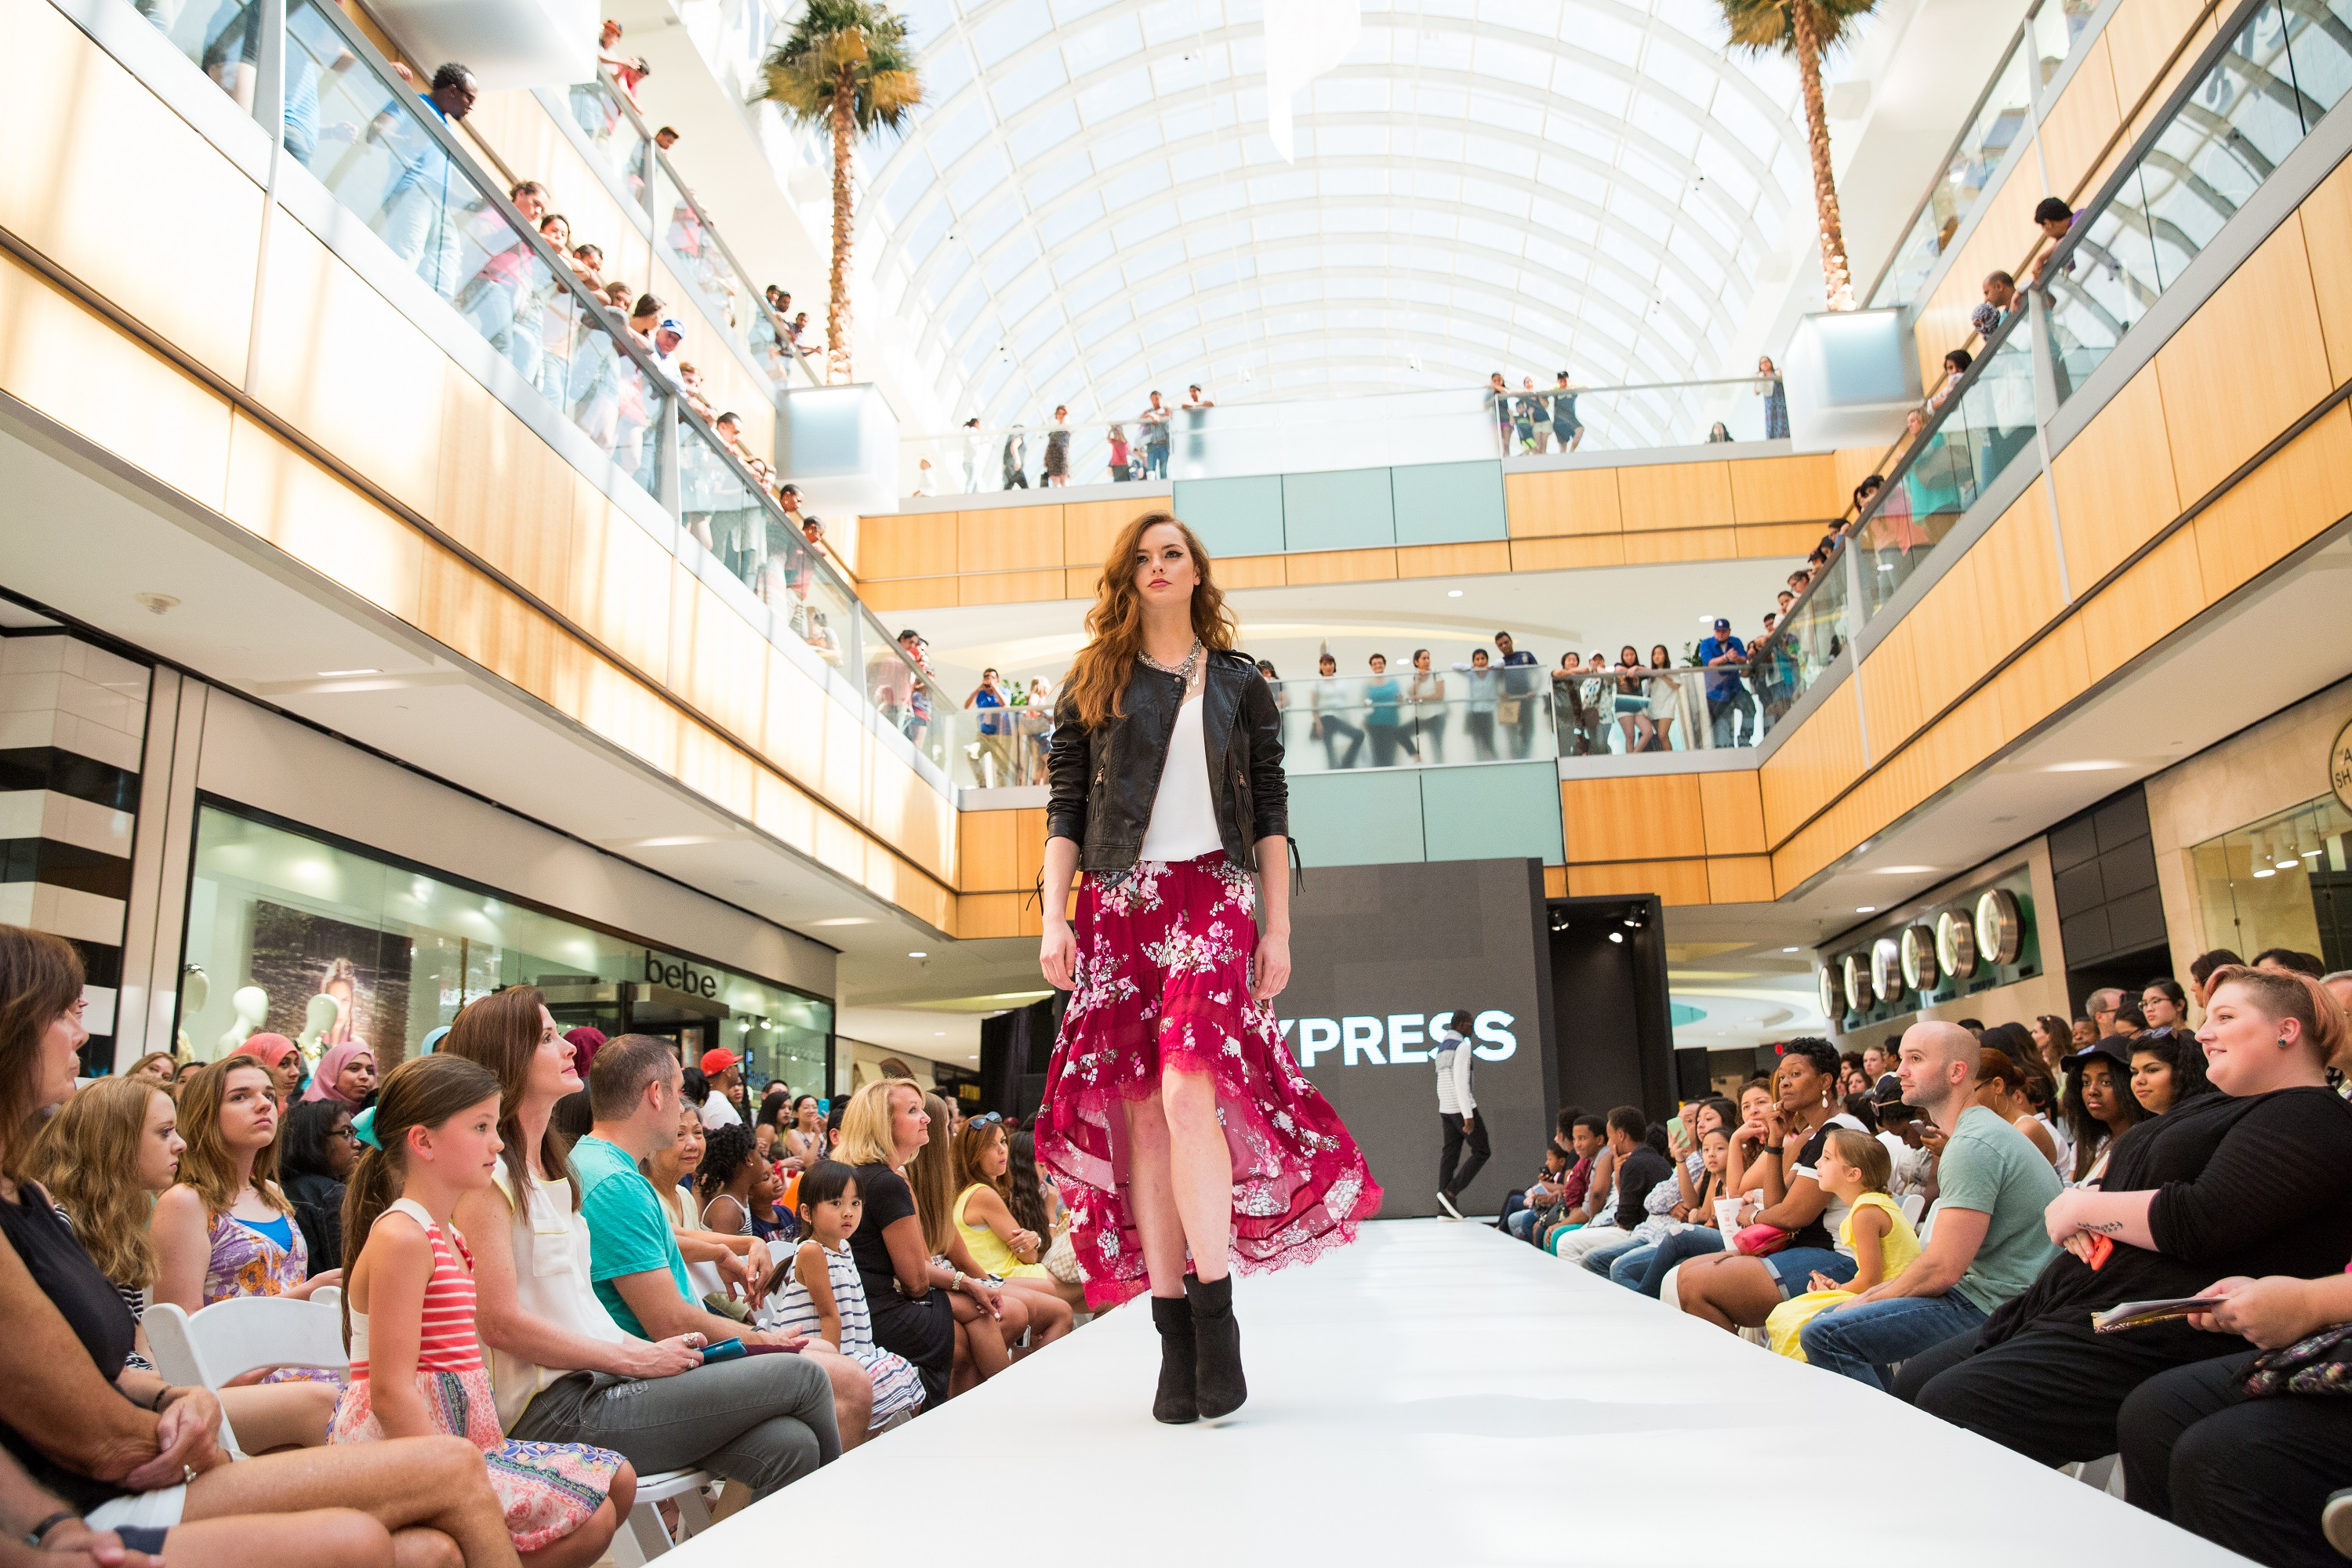 Fall for back-to-school fashions at Galleria Dallas' free Runway Revue